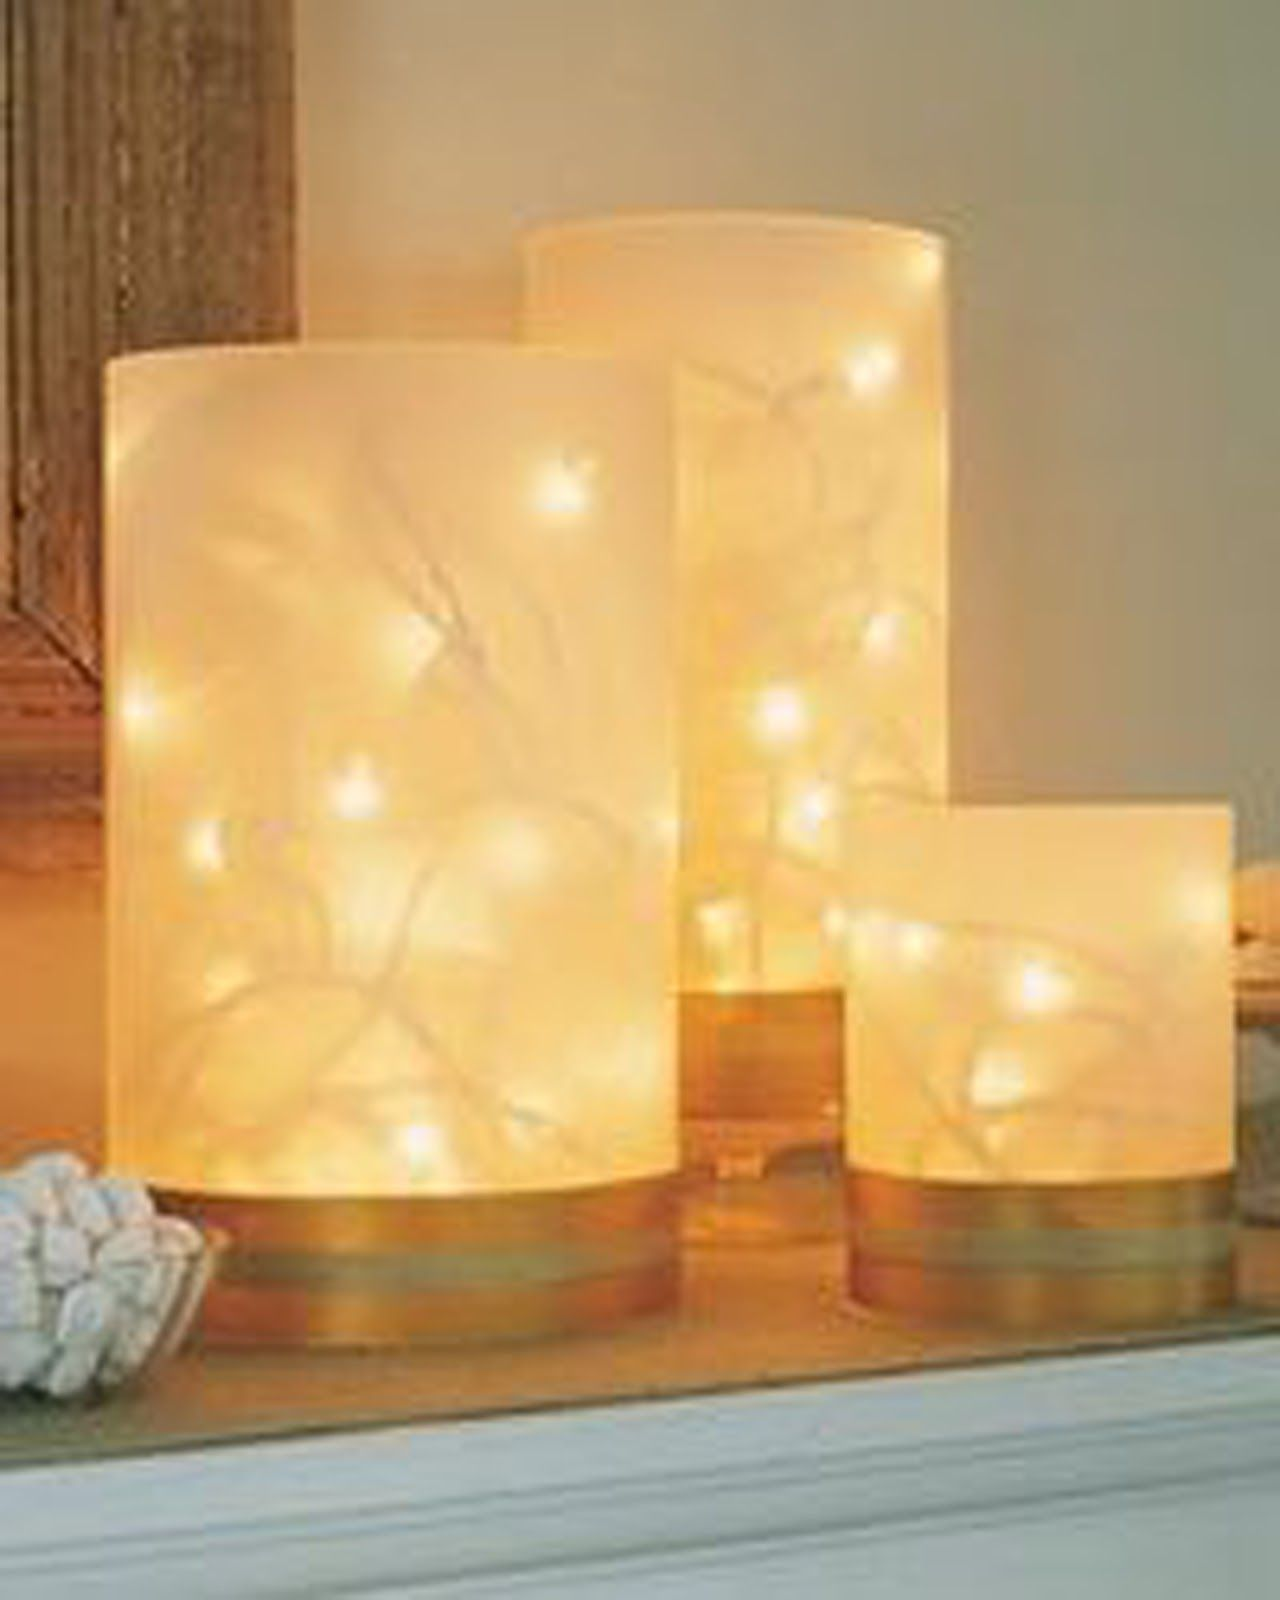 Dollar Store Christmas Lights Safe: Cheap Glowy Candle Lighting: Clear Cylinder Vases From